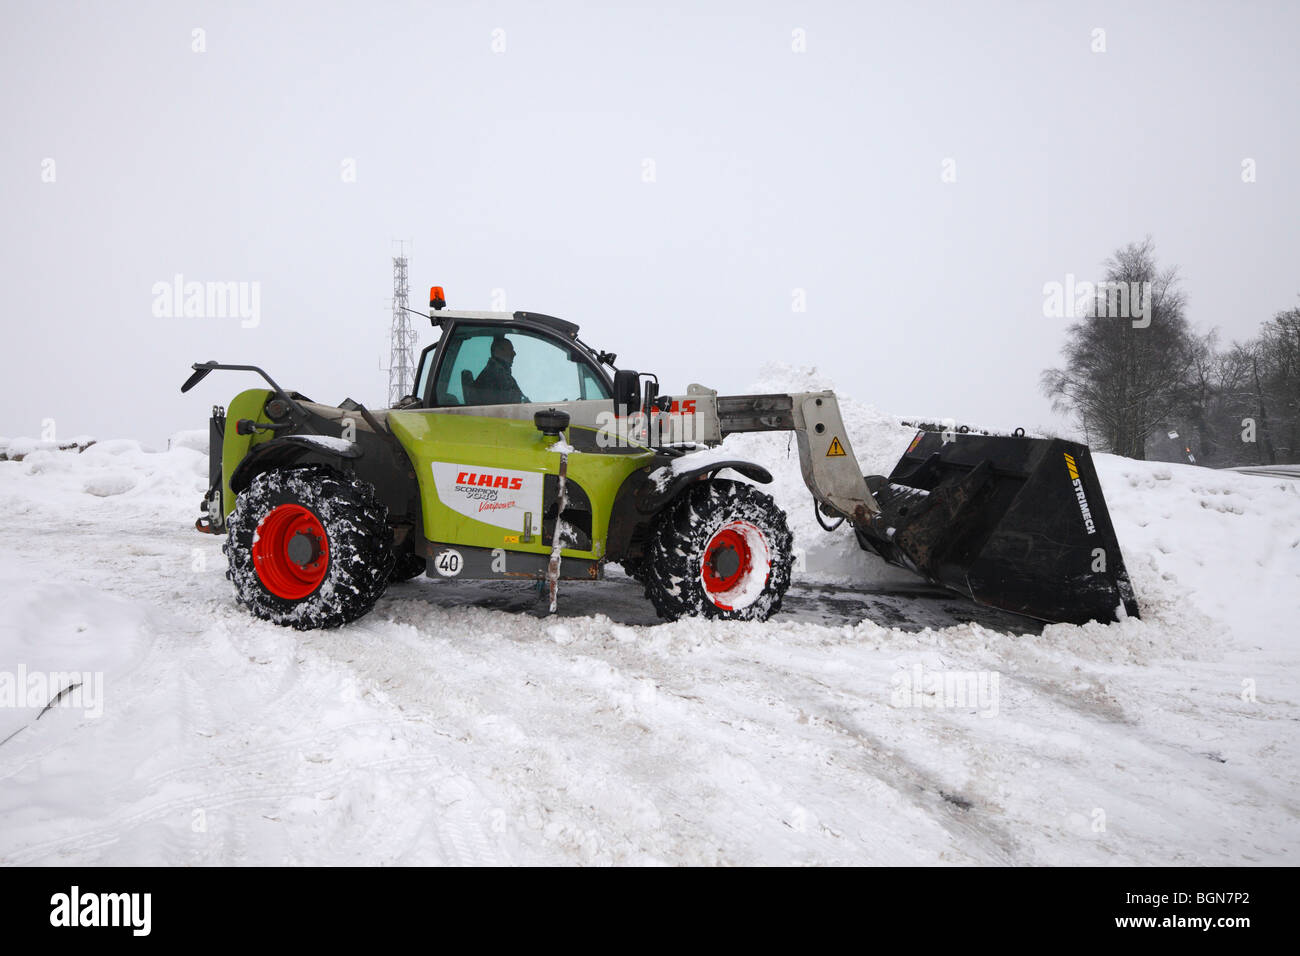 Claas Scorpion 7040 machine clearing snow. - Stock Image